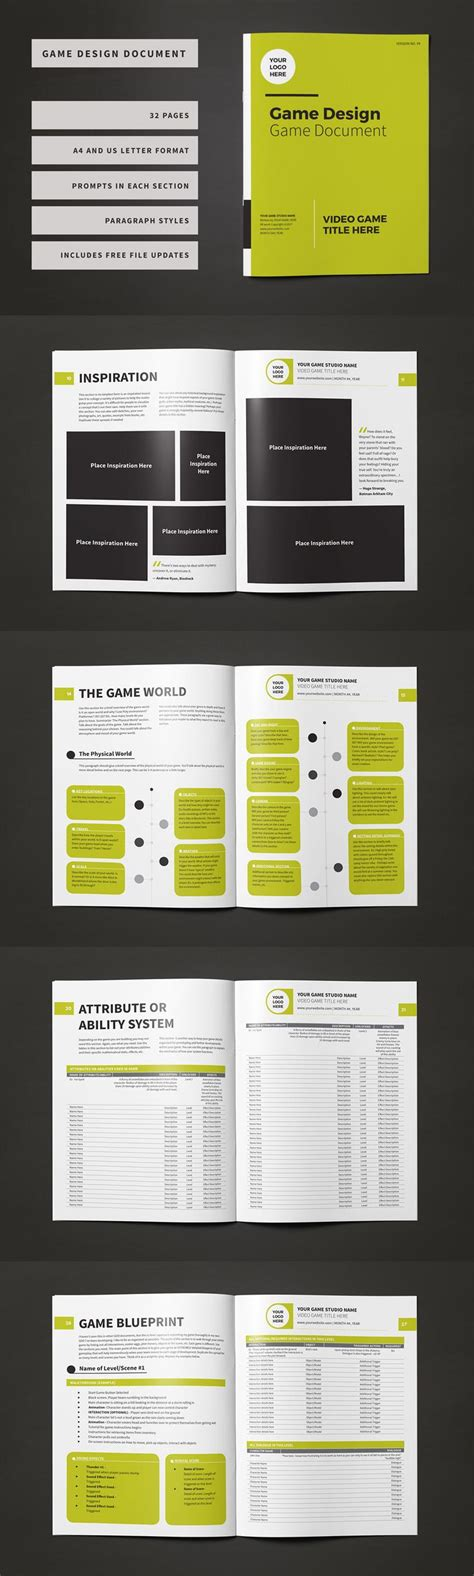 best 25 game design document ideas on pinterest sport